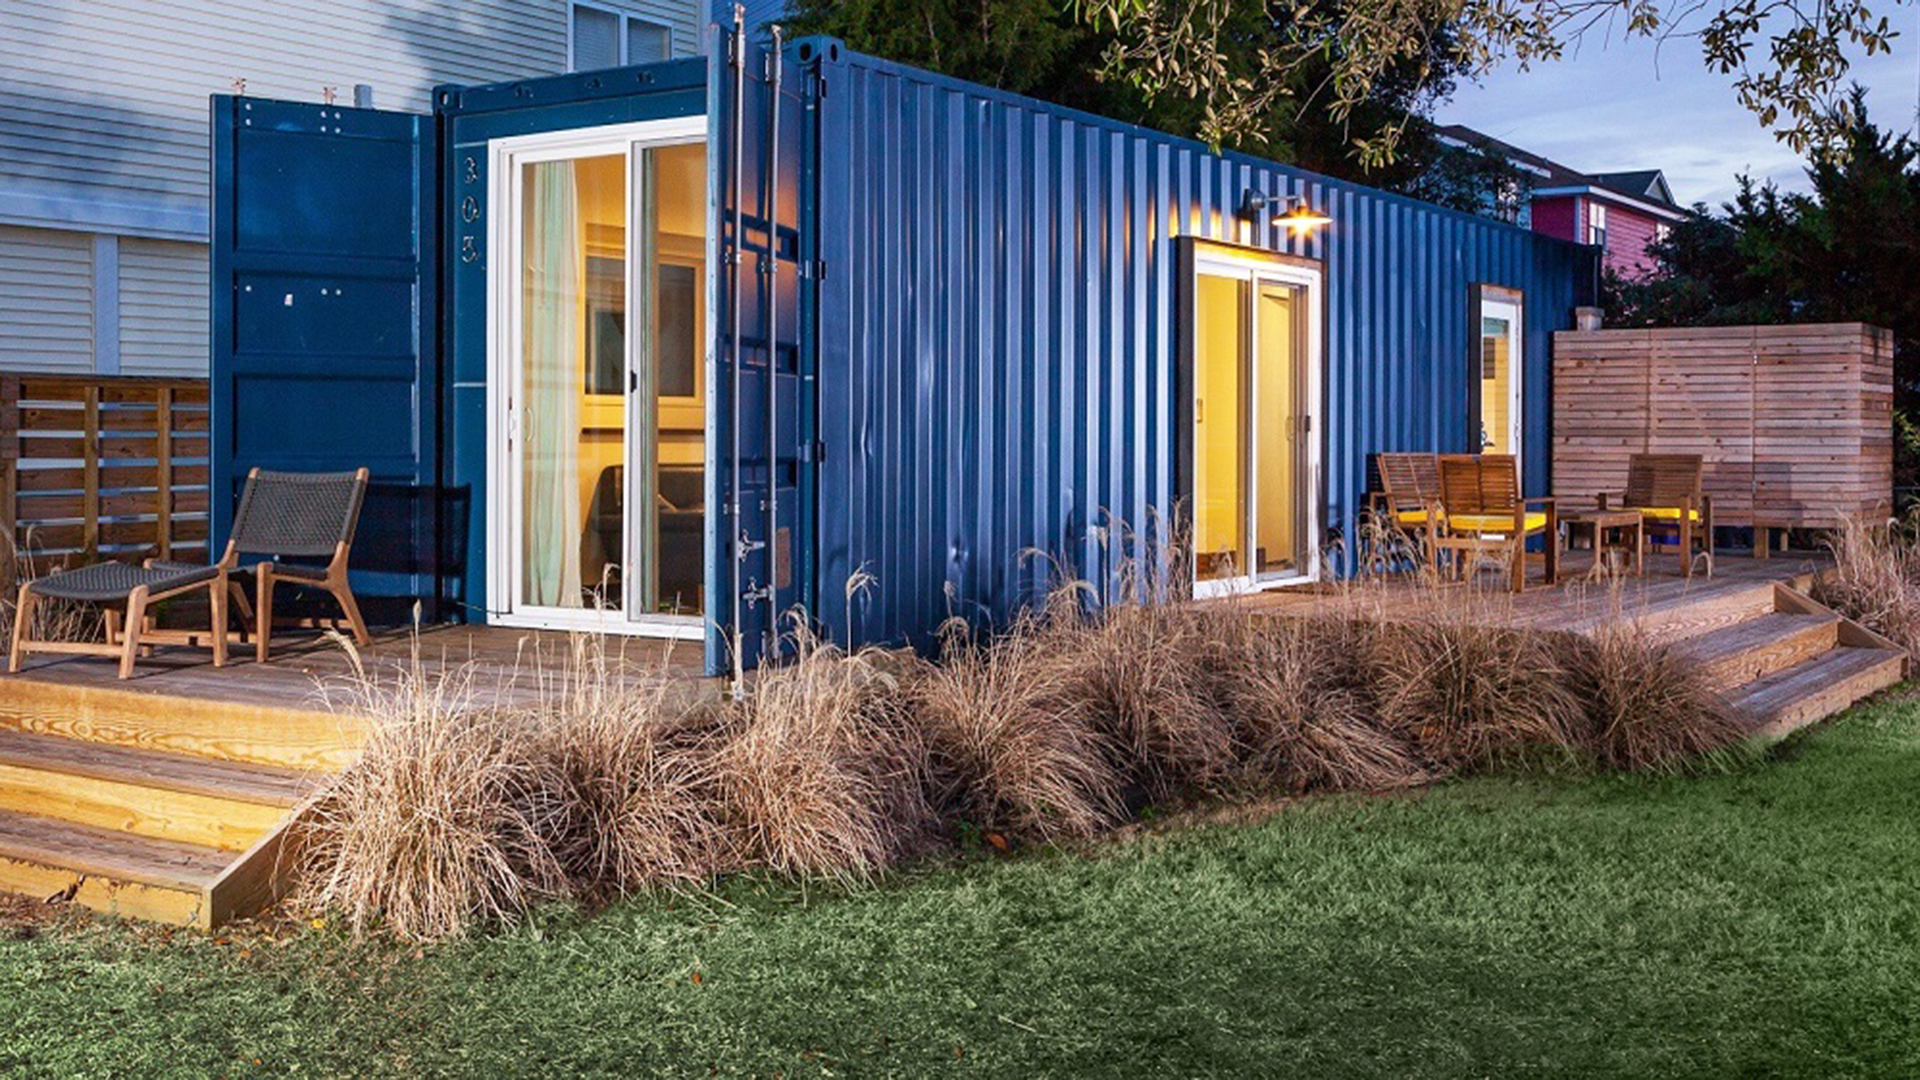 See Inside This Tiny Home Made Out Of A Shipping Container